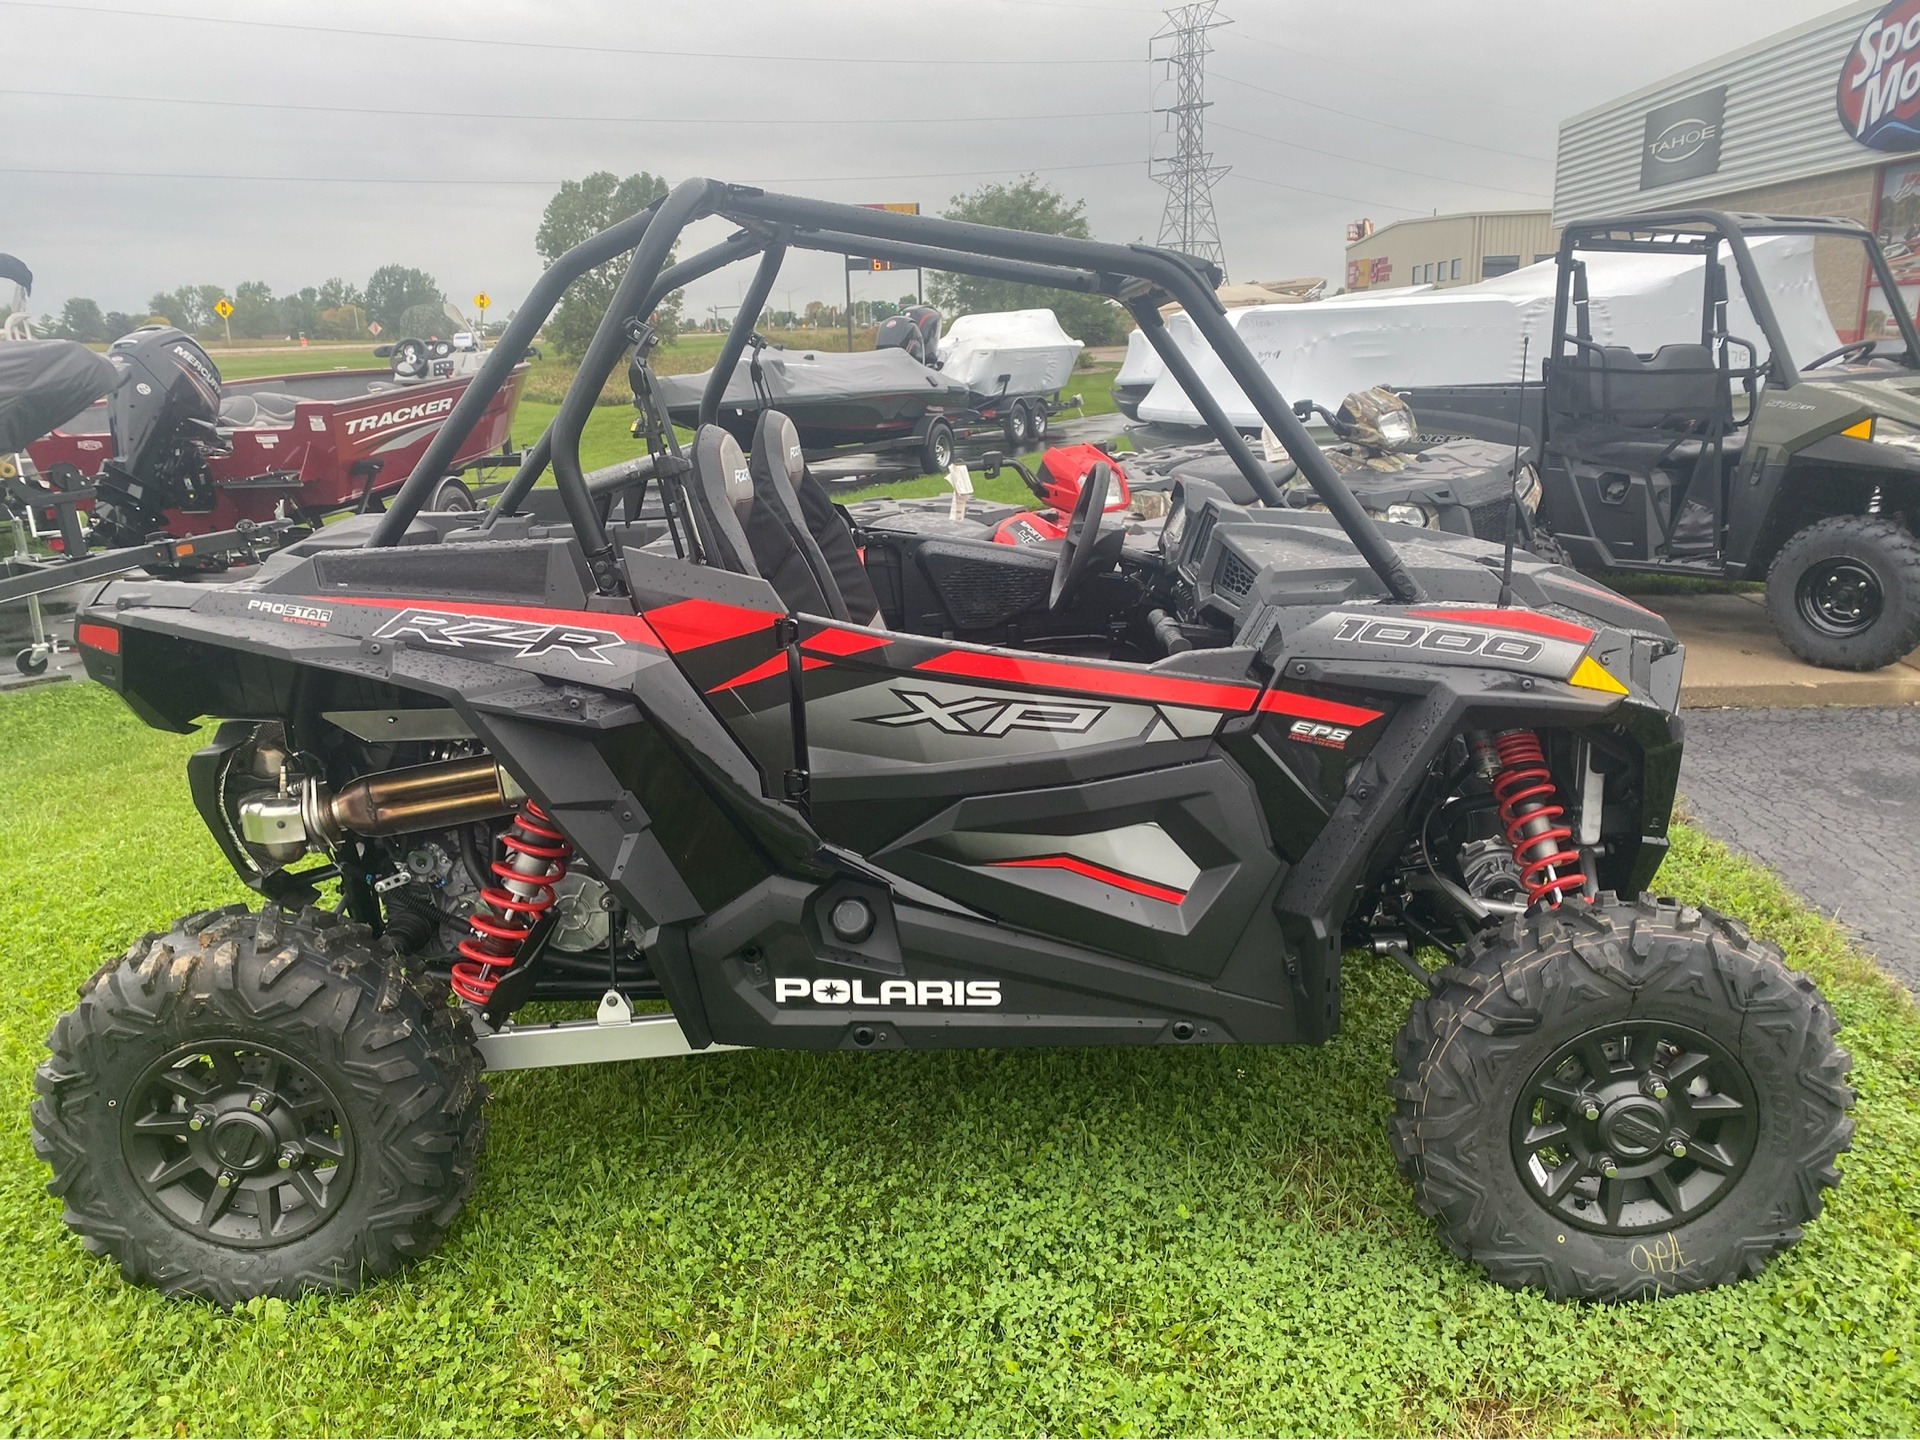 2019 Polaris RZR XP 1000 Ride Command in Appleton, Wisconsin - Photo 2